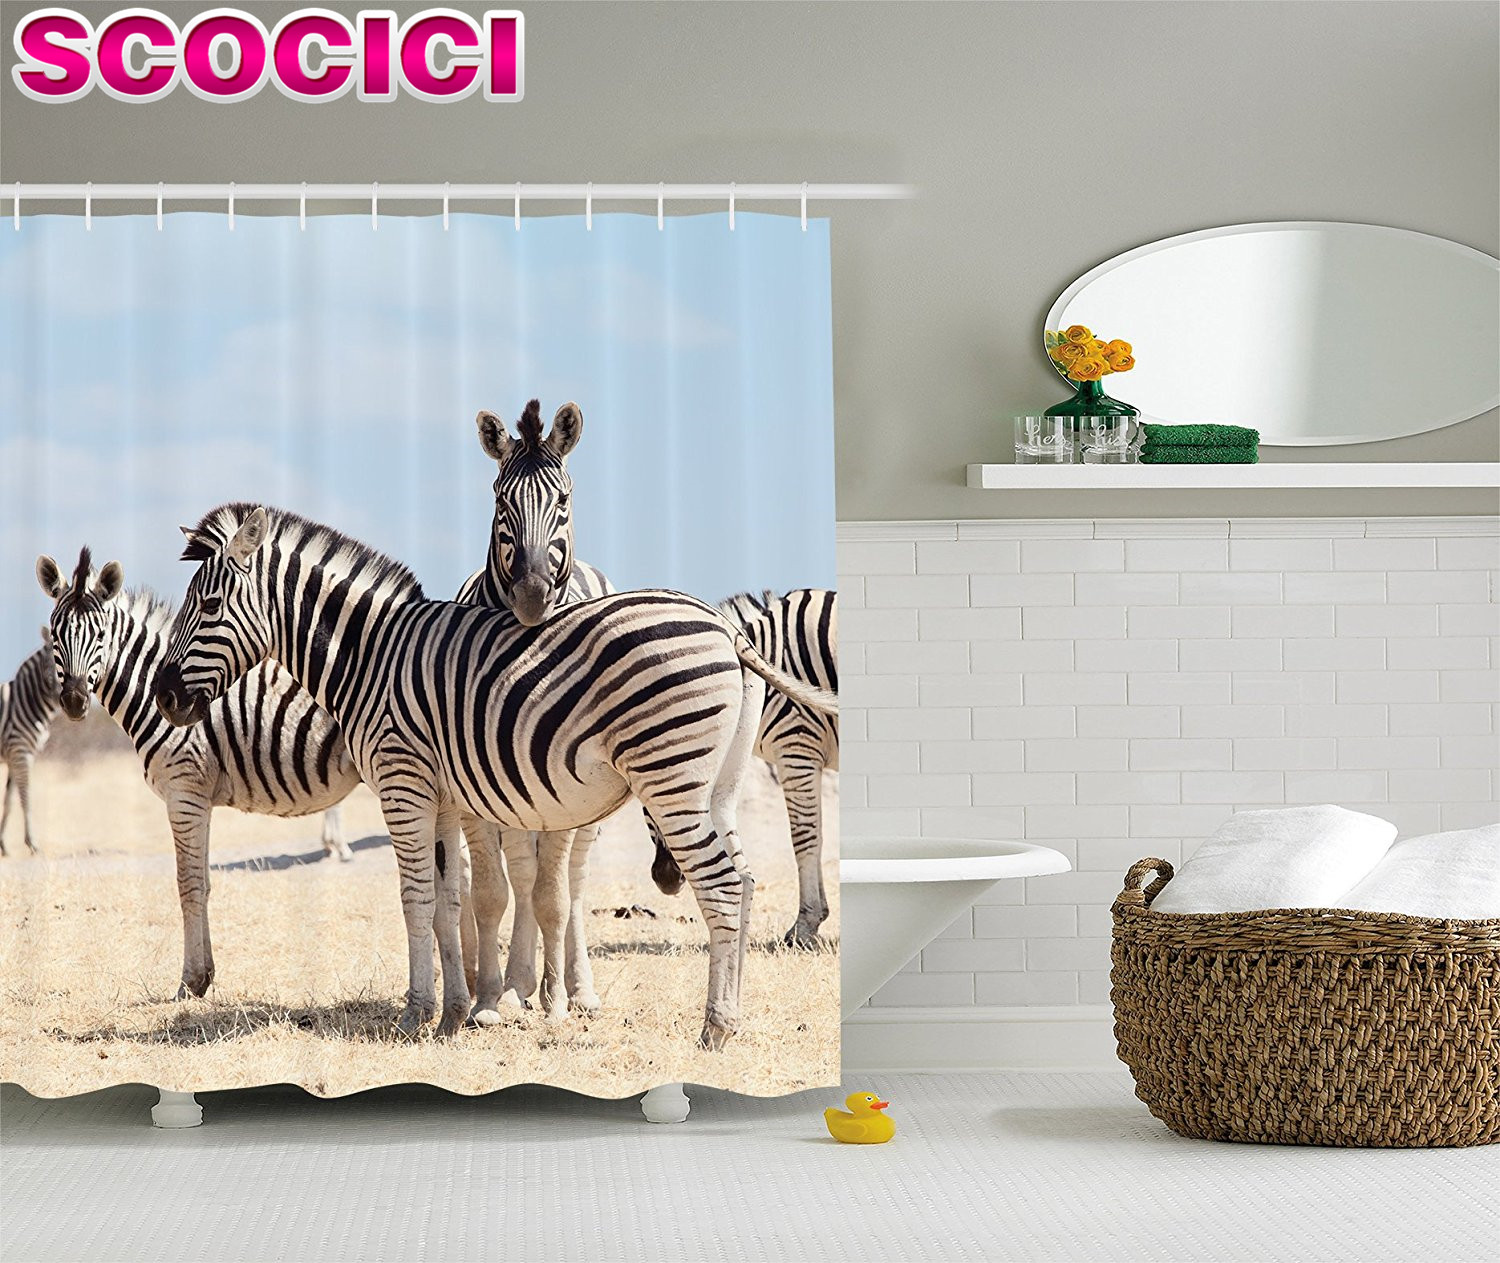 Wildlife Decor Shower Curtain Set Three Zebras In National Park Savannah Safari Bathroom Accessories